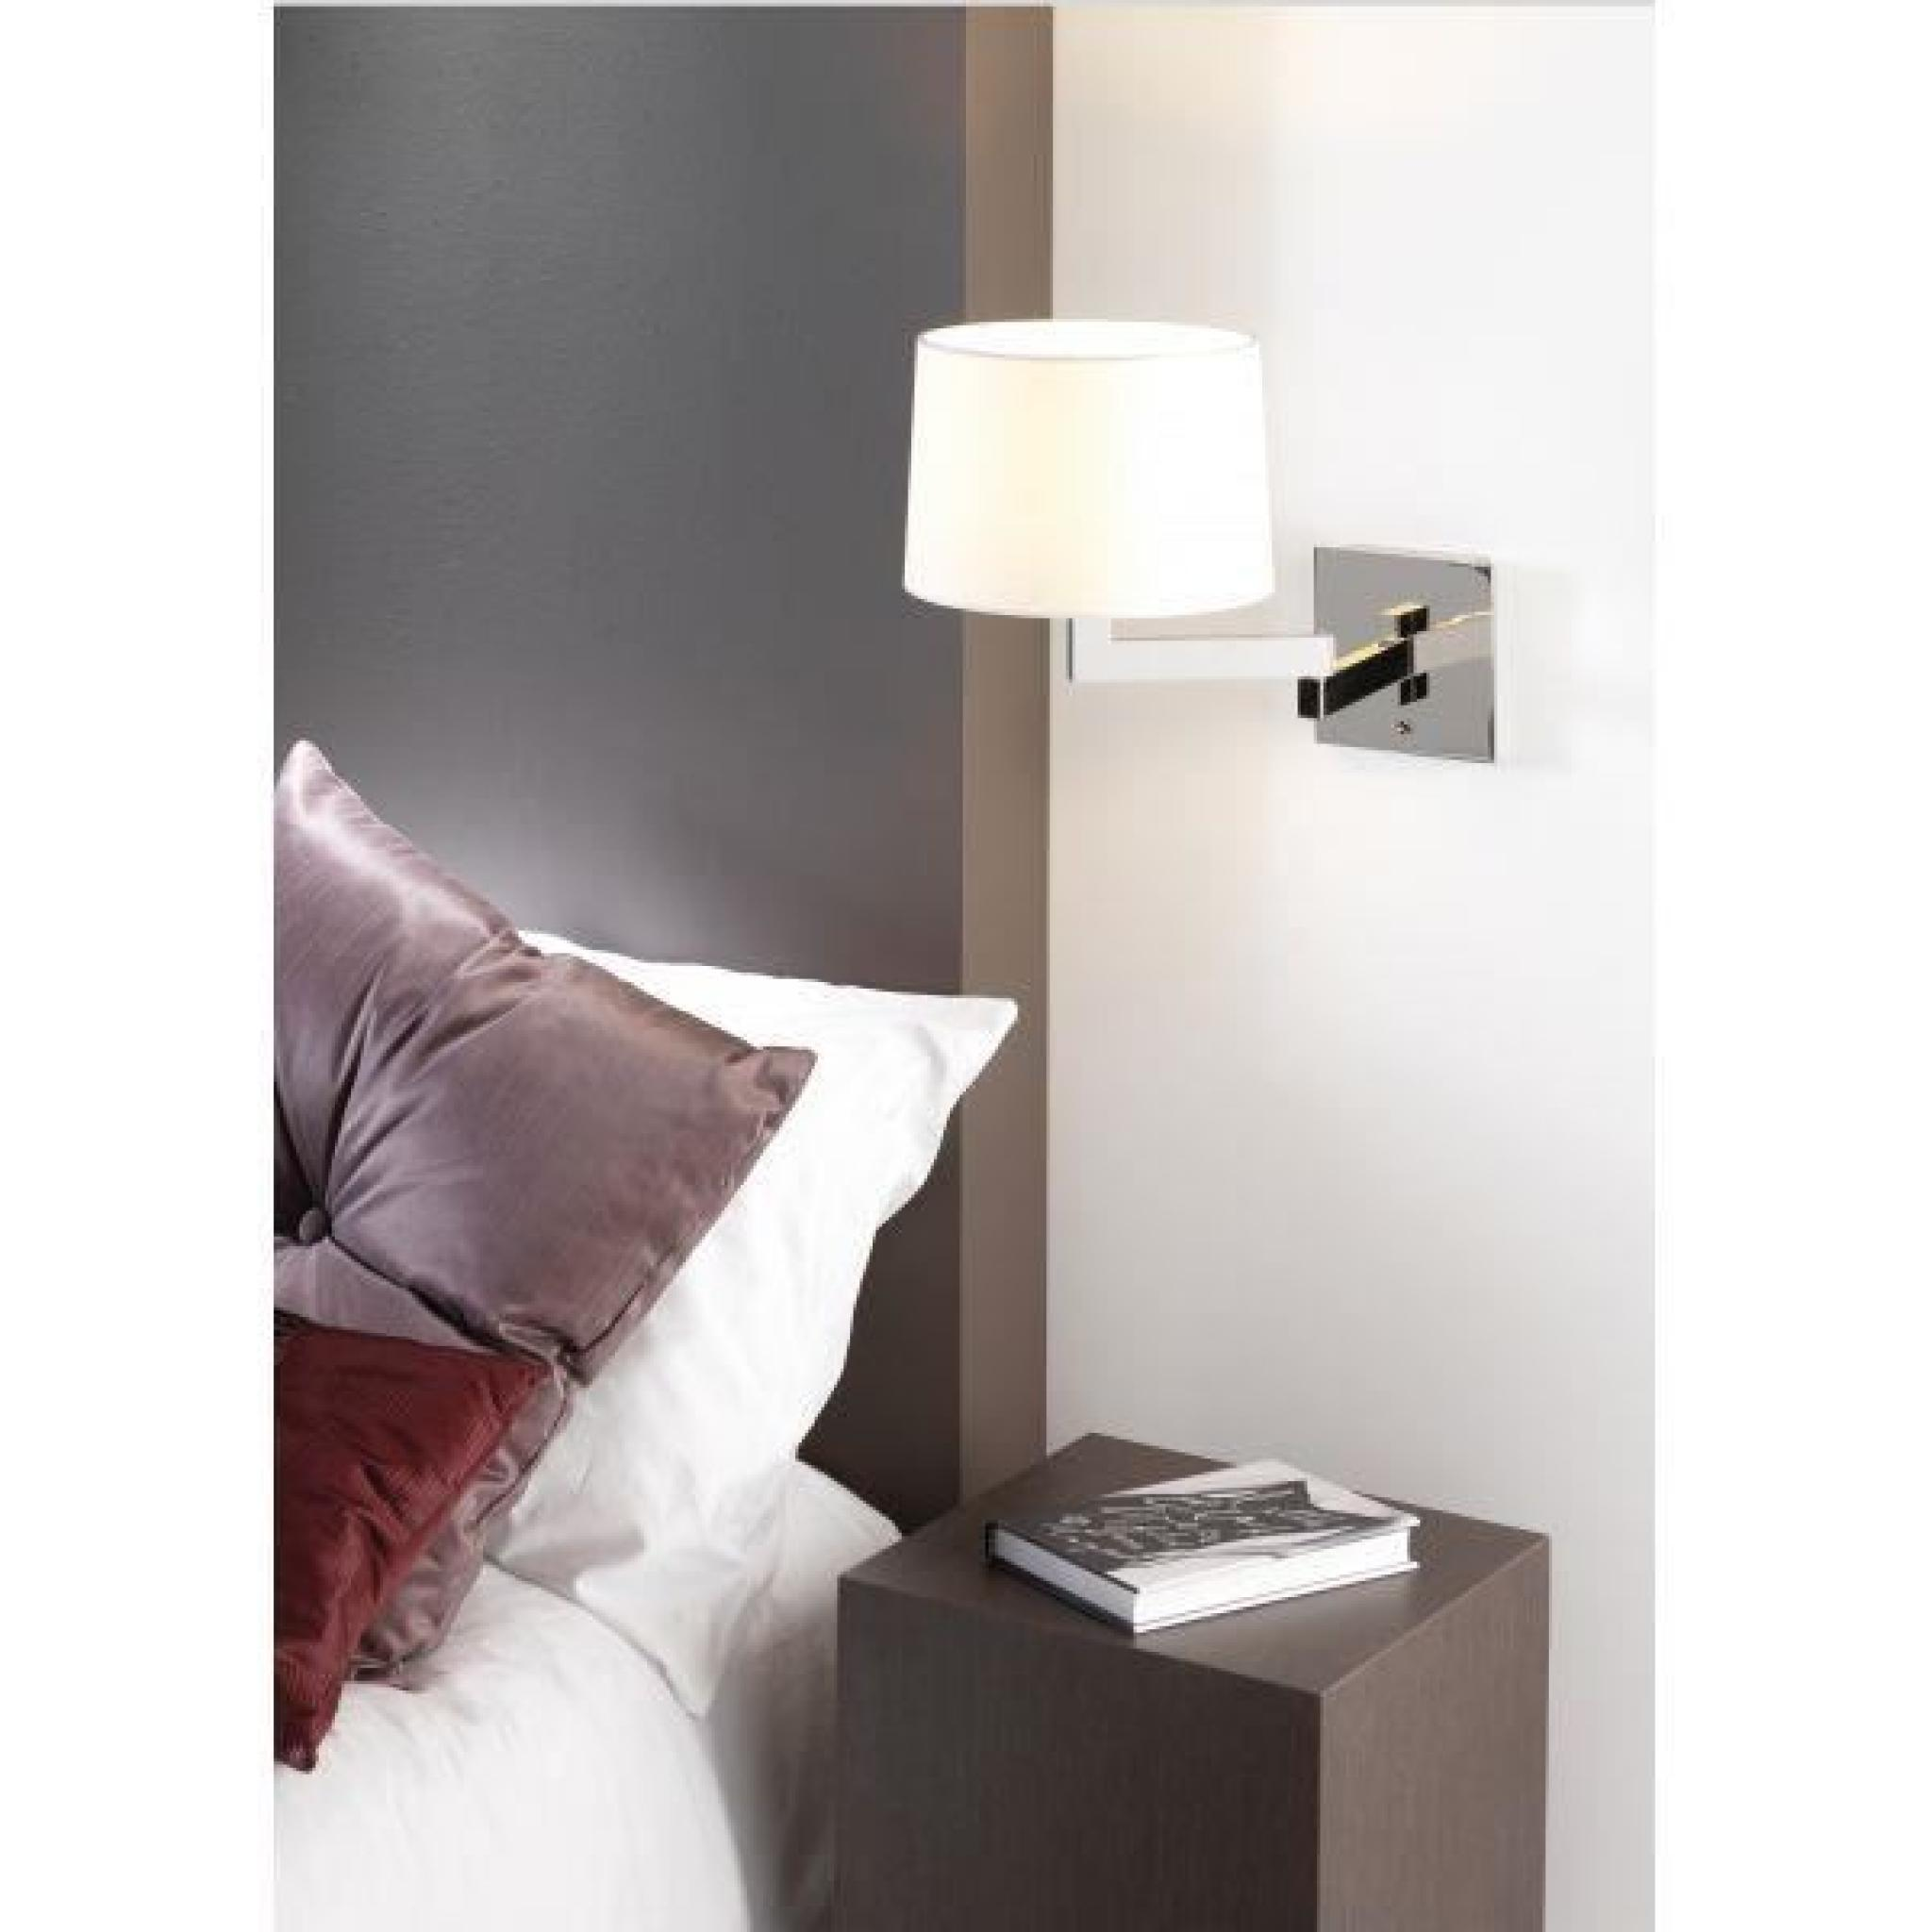 applique murale momo avec liseuse led nickel mat achat vente applique murale pas cher. Black Bedroom Furniture Sets. Home Design Ideas